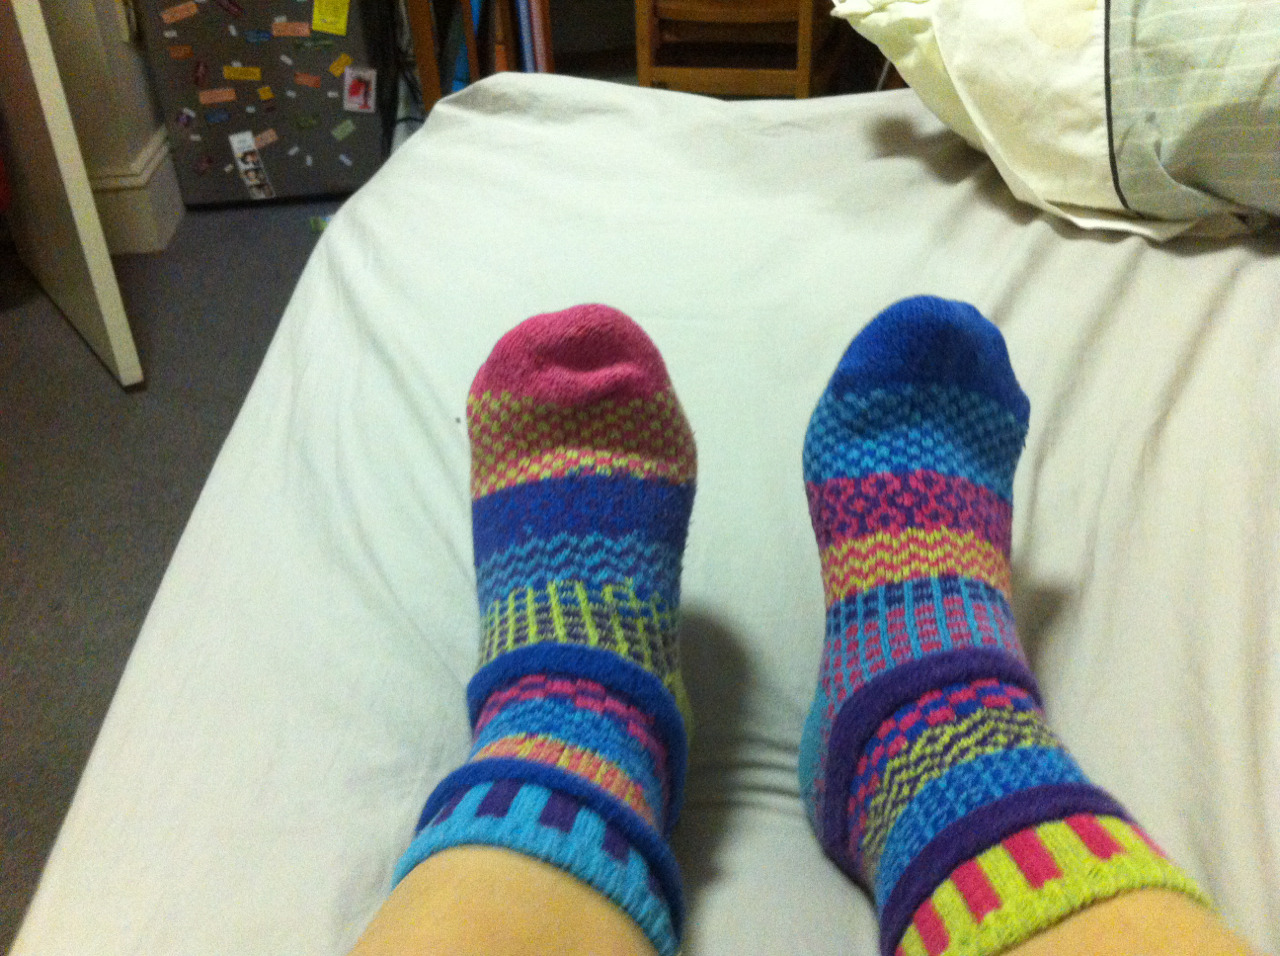 Today is a fun socks day.